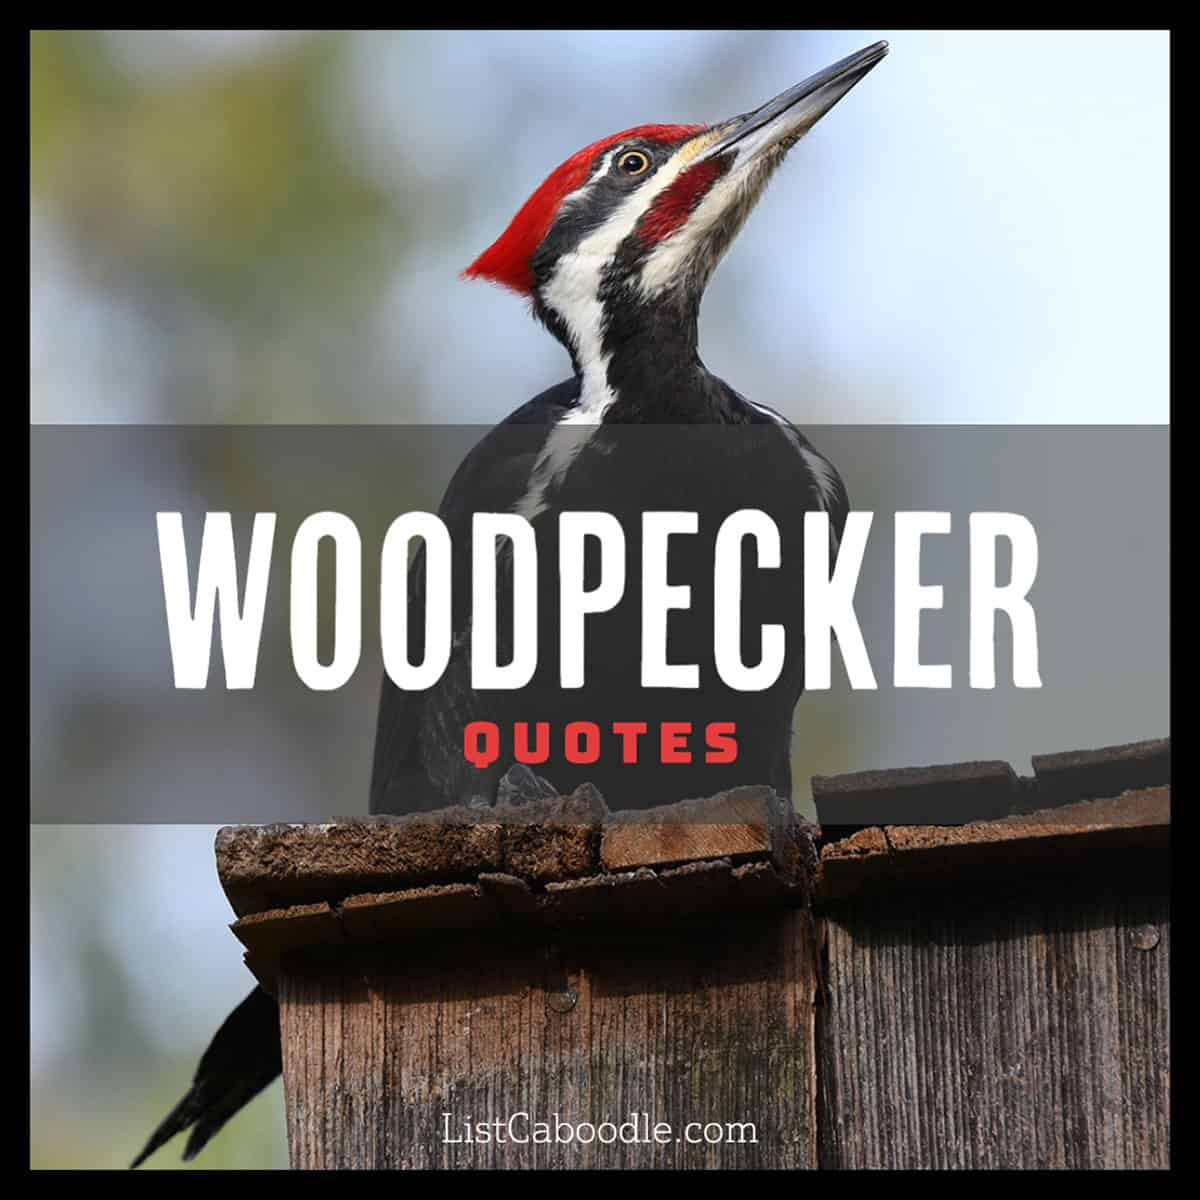 Woodpecker quotes image